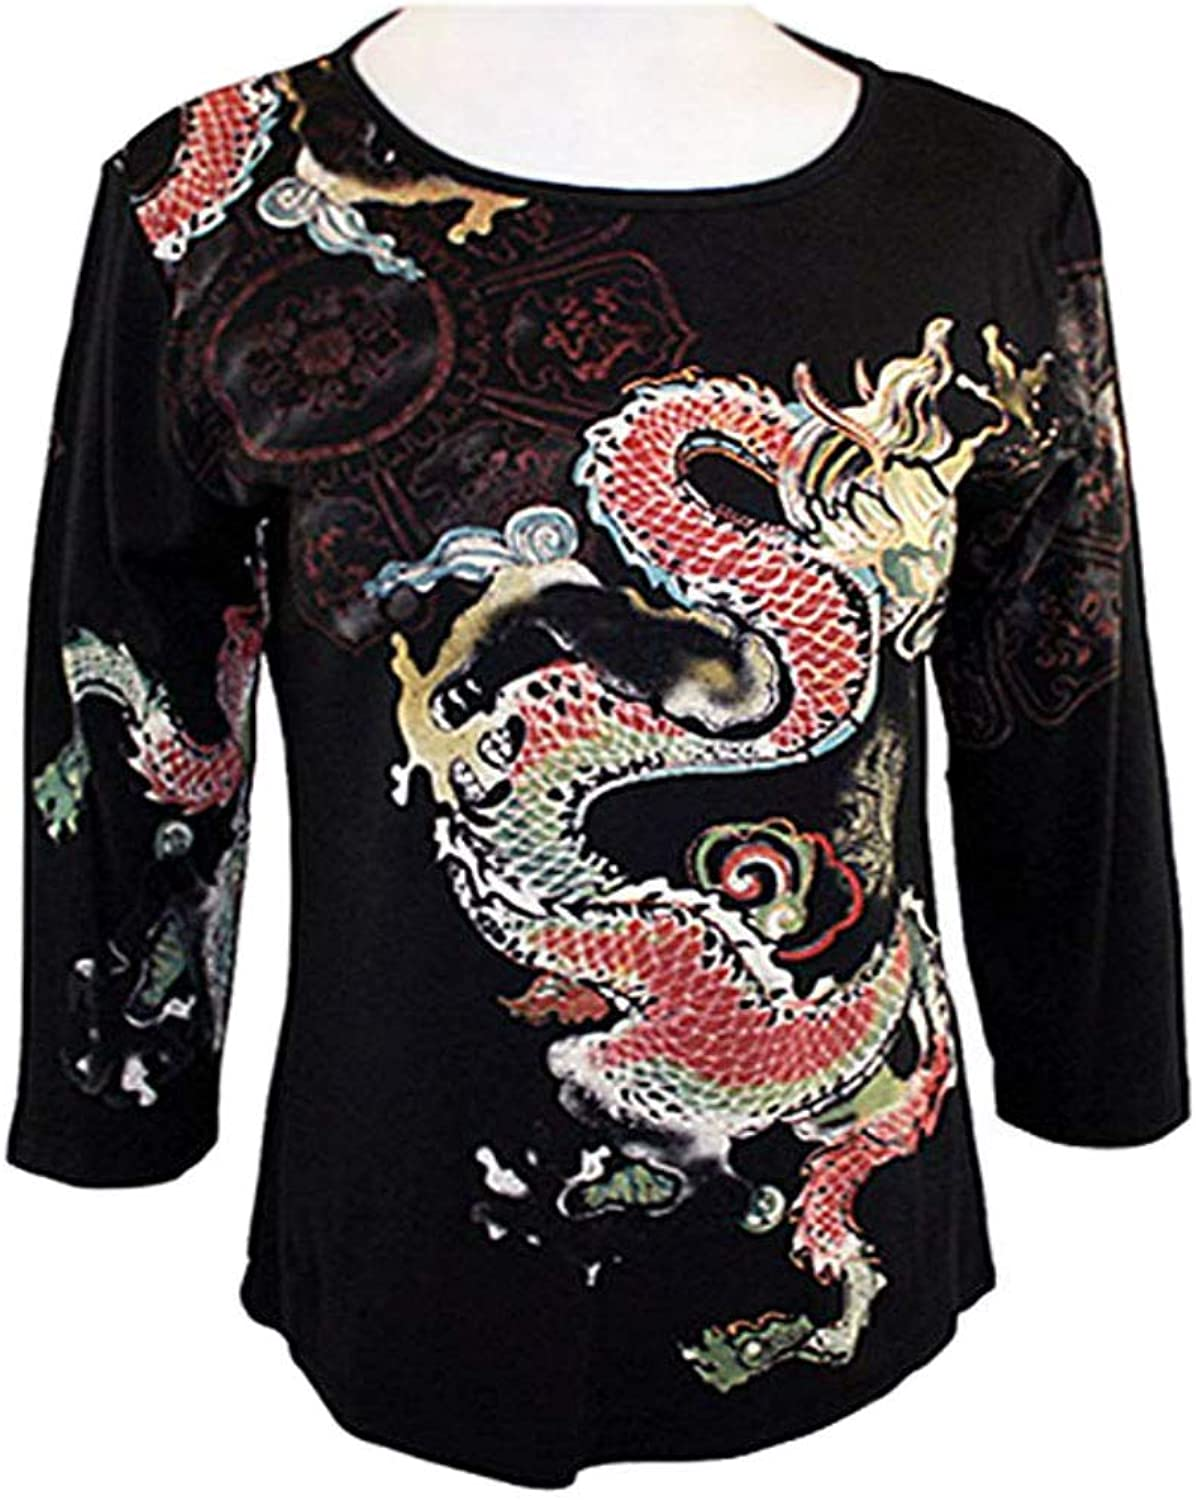 Katina Marie  Rainbow Dragon 3 4 Sleeve, Rhinestone Studded, PreWashed, Printed Cotton, Scoop Neck Black Top